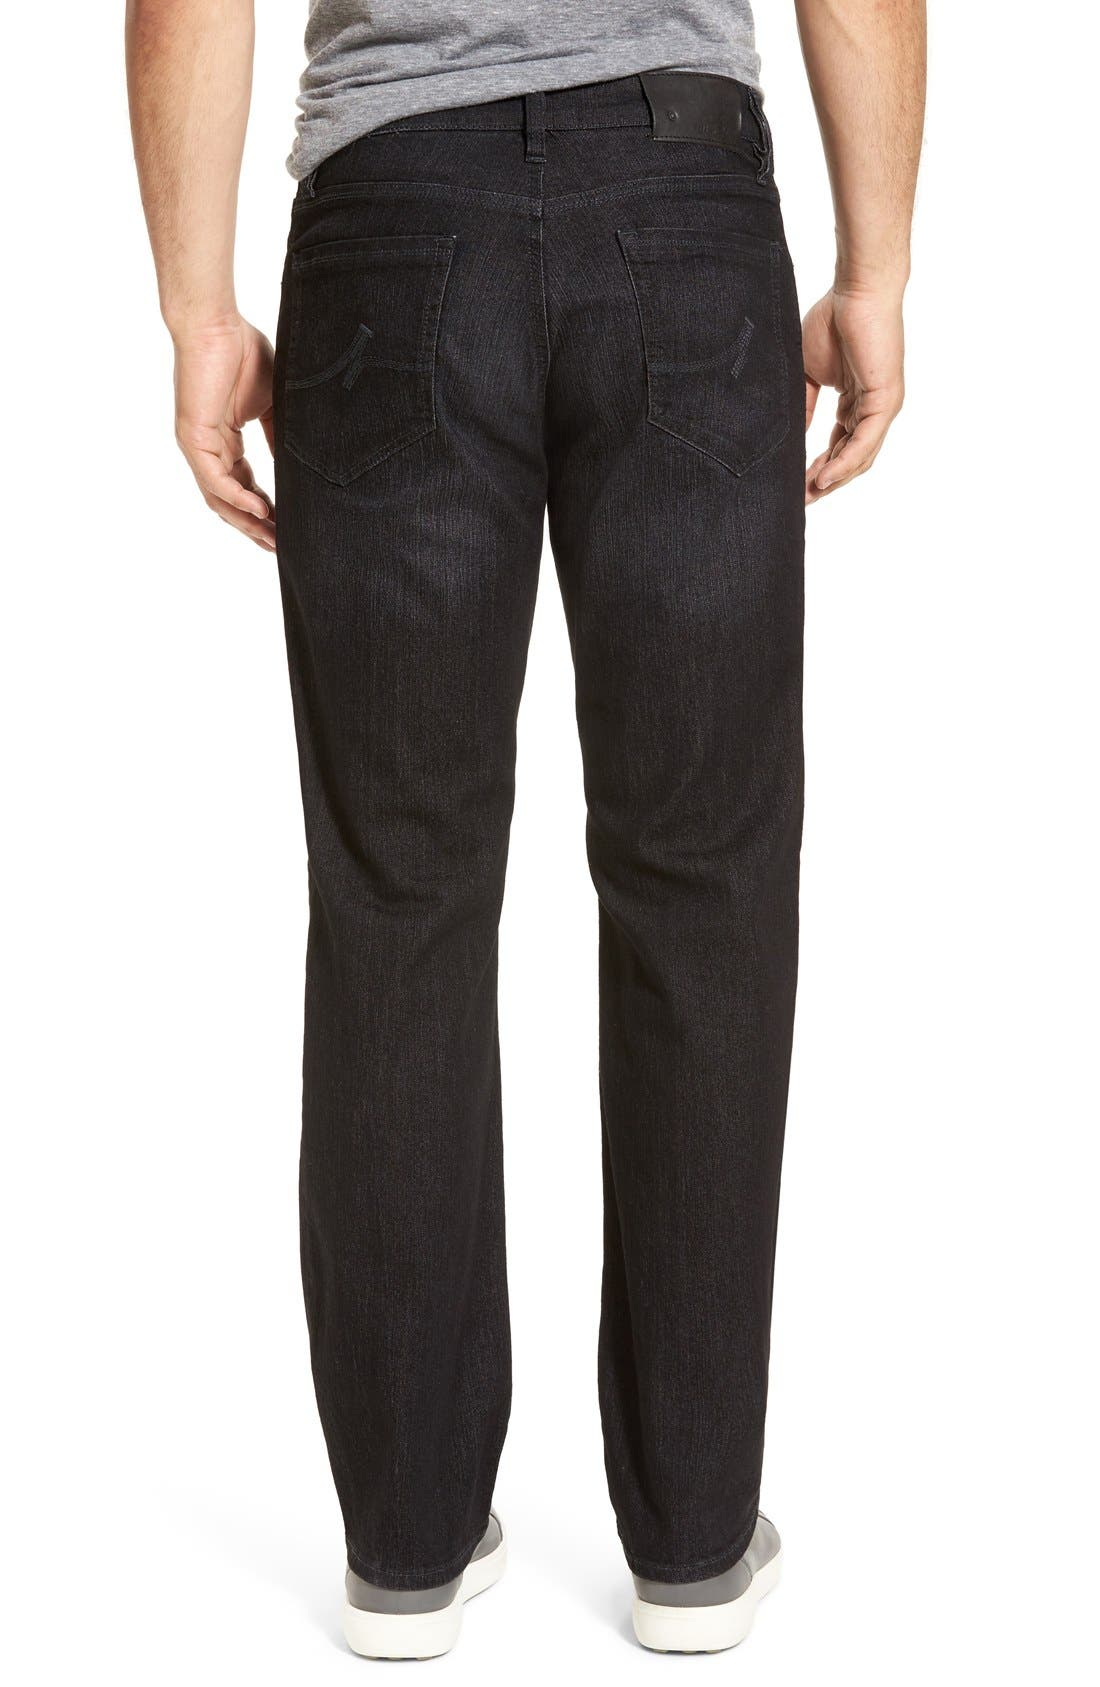 Alternate Image 2  - 34 Heritage 'Charisma' Relaxed Fit Jeans (Charcoal Comfort) (Online Only)